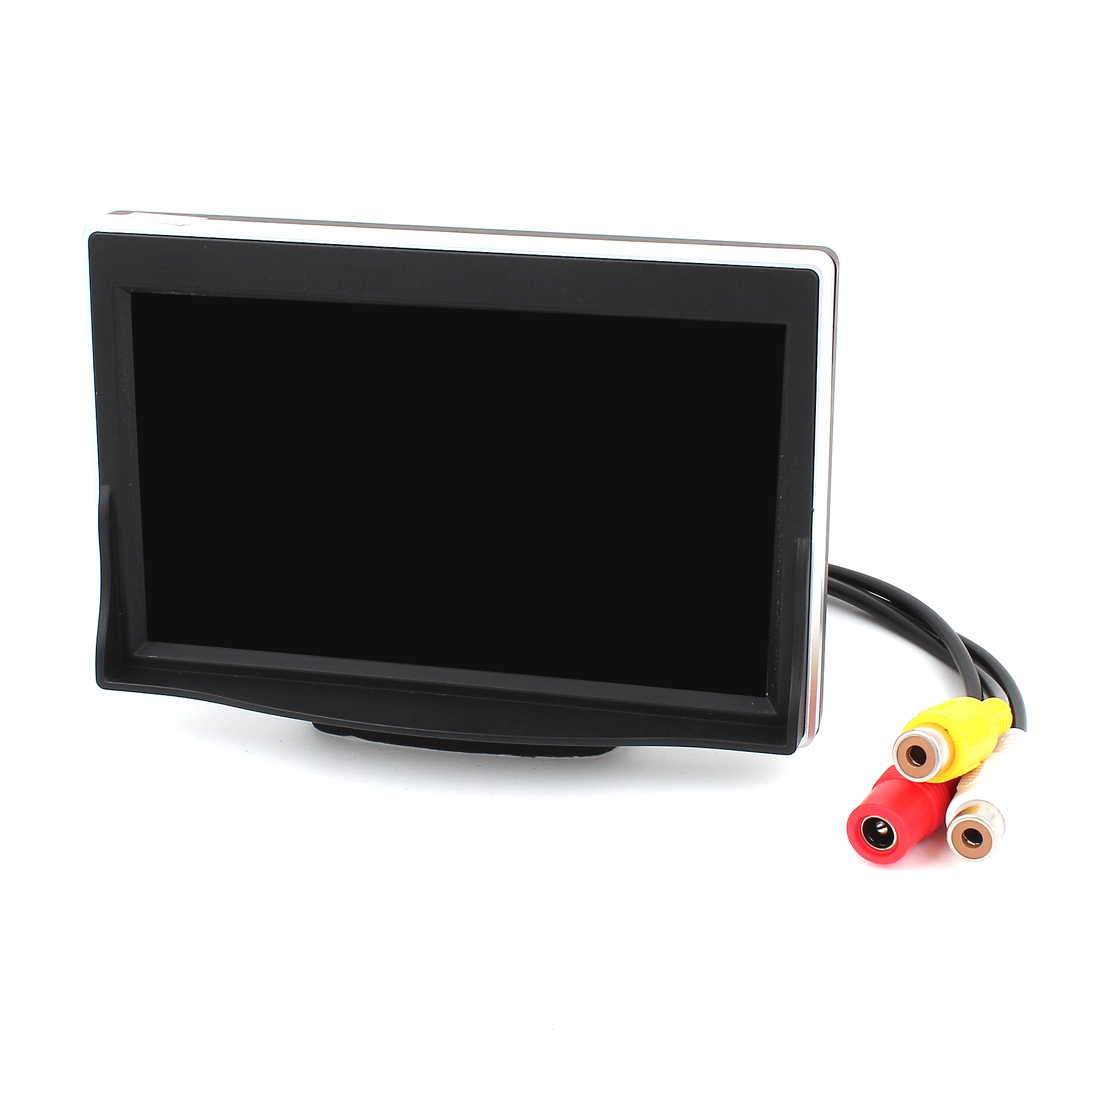 "5"" Widescreen 2 RCA Female 1 Male Socket DVD AV Video LCD Monitor for Car"